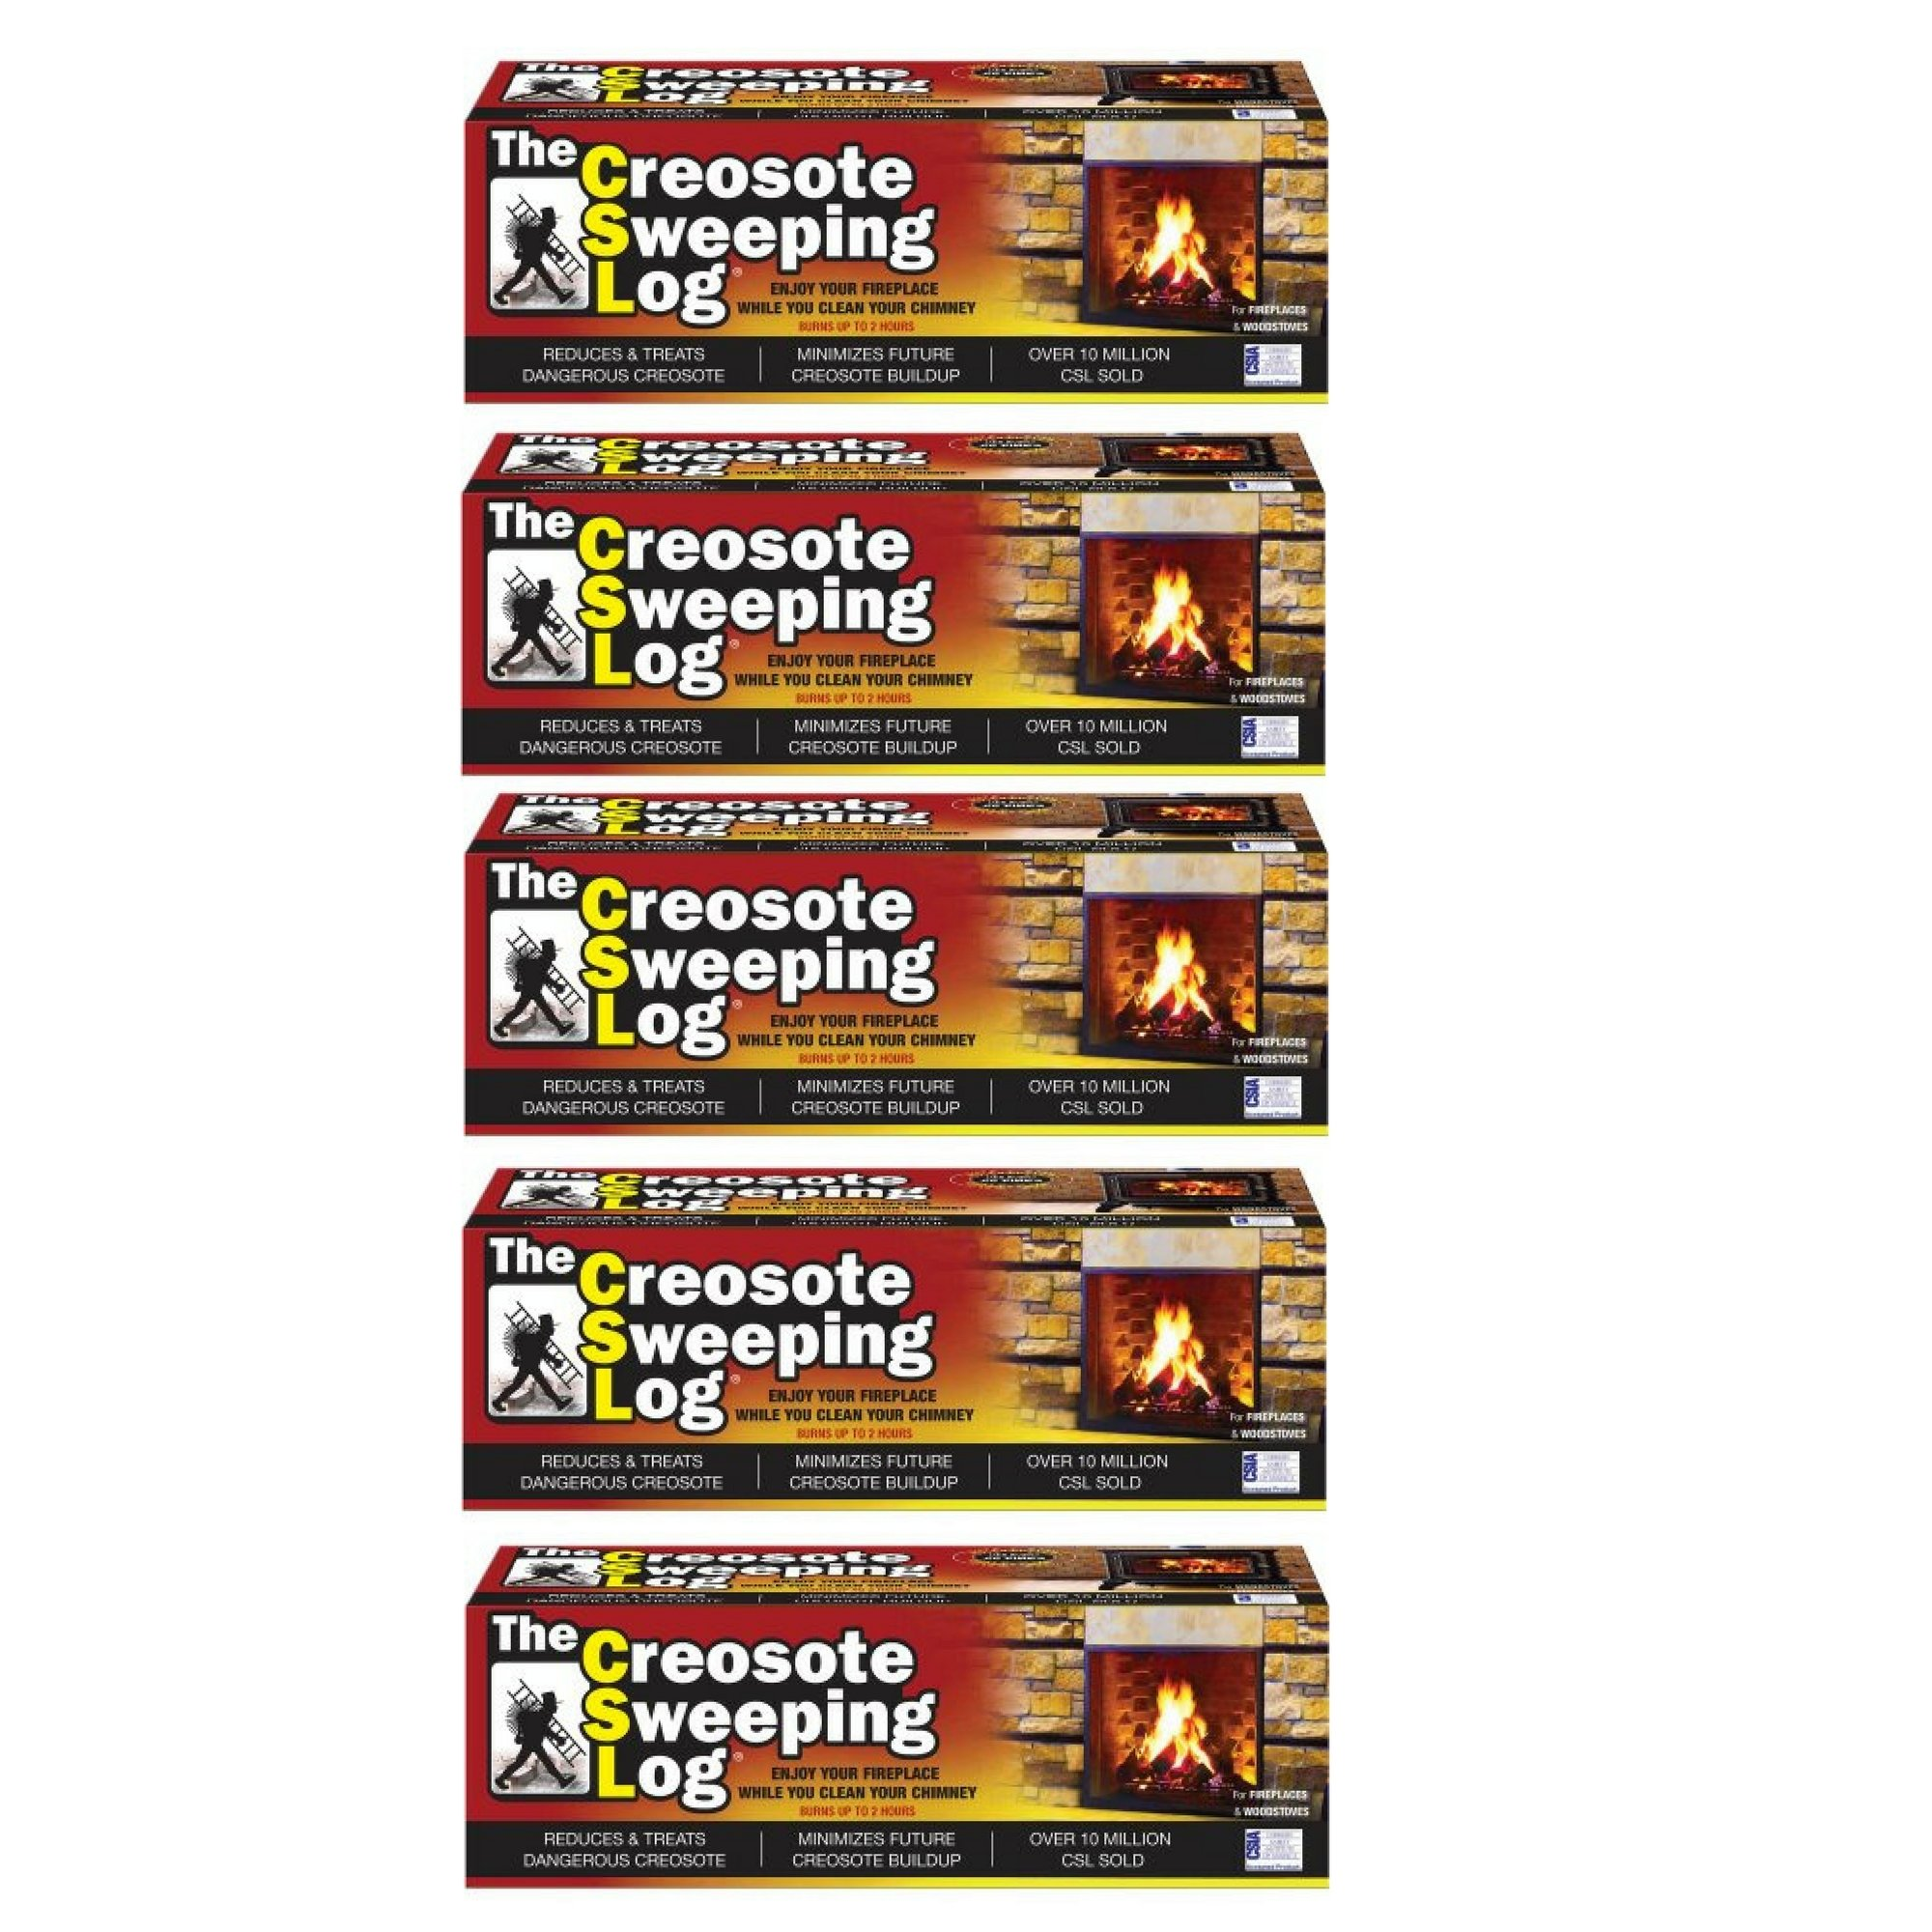 Creosote Sweeping Log For Fireplaces - 5 Pack